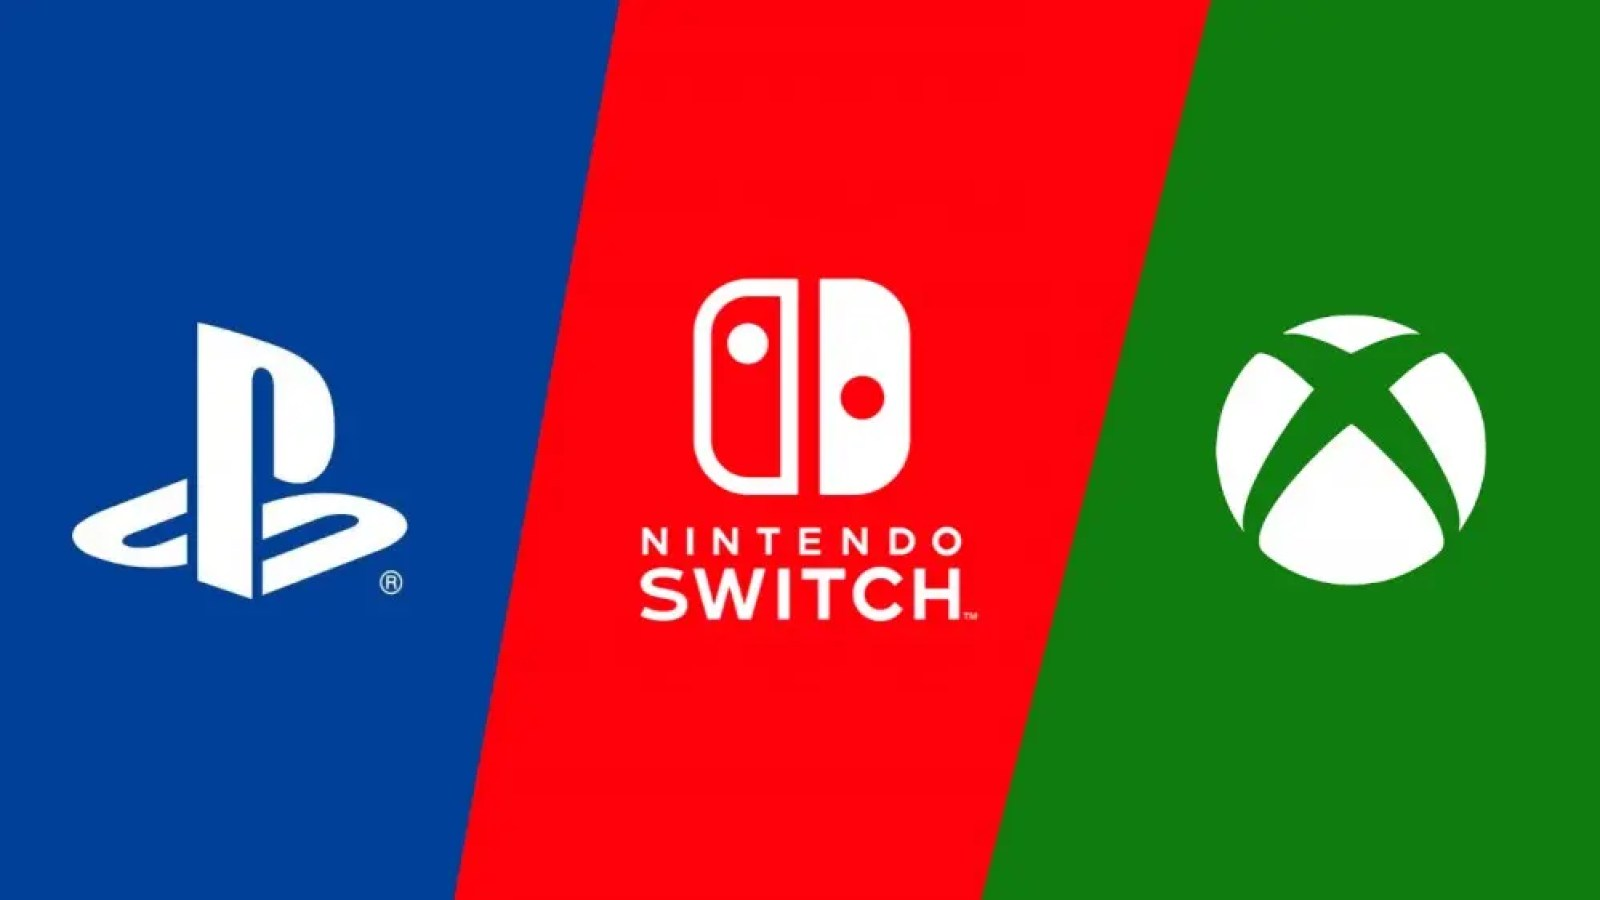 Playstation, Nintendo Switch, and Xbox Logos